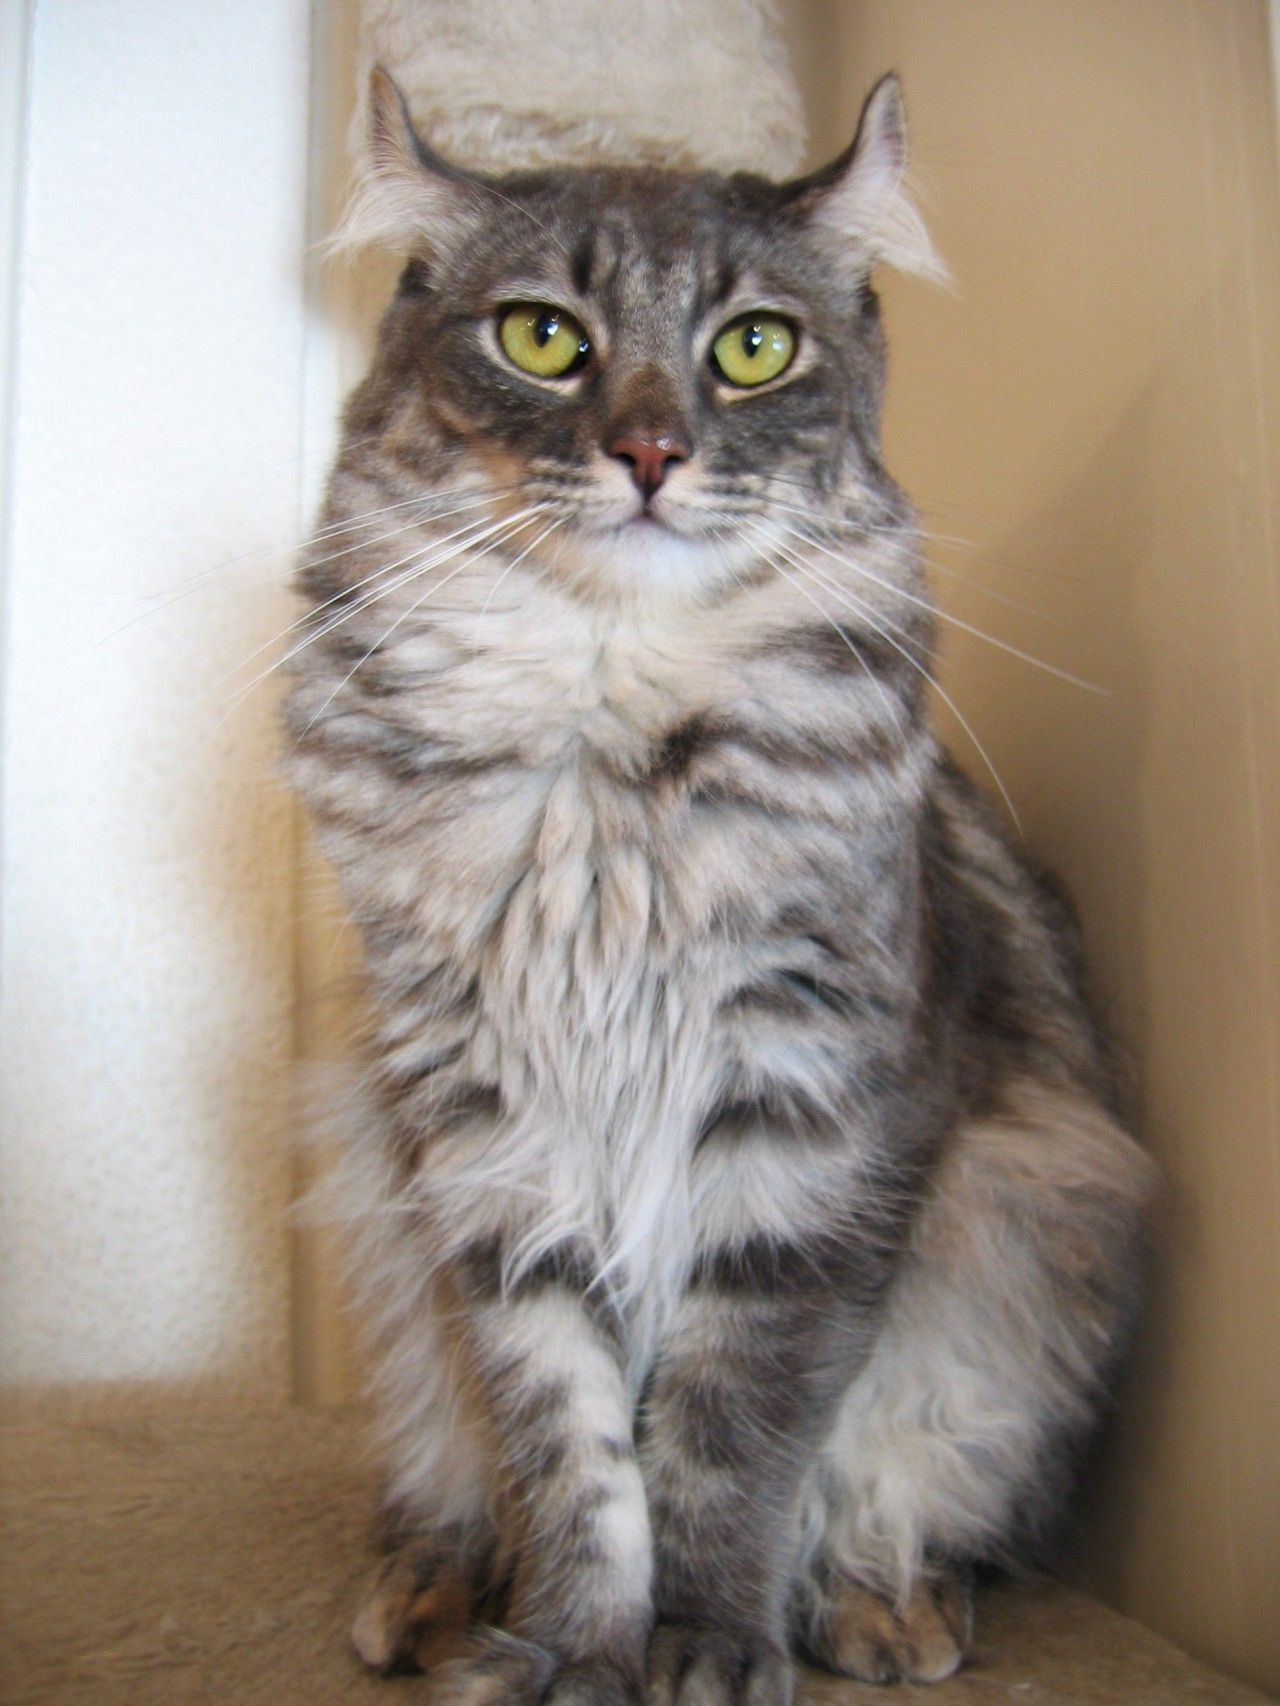 The American Curl is a beautiful and unique cat breed with